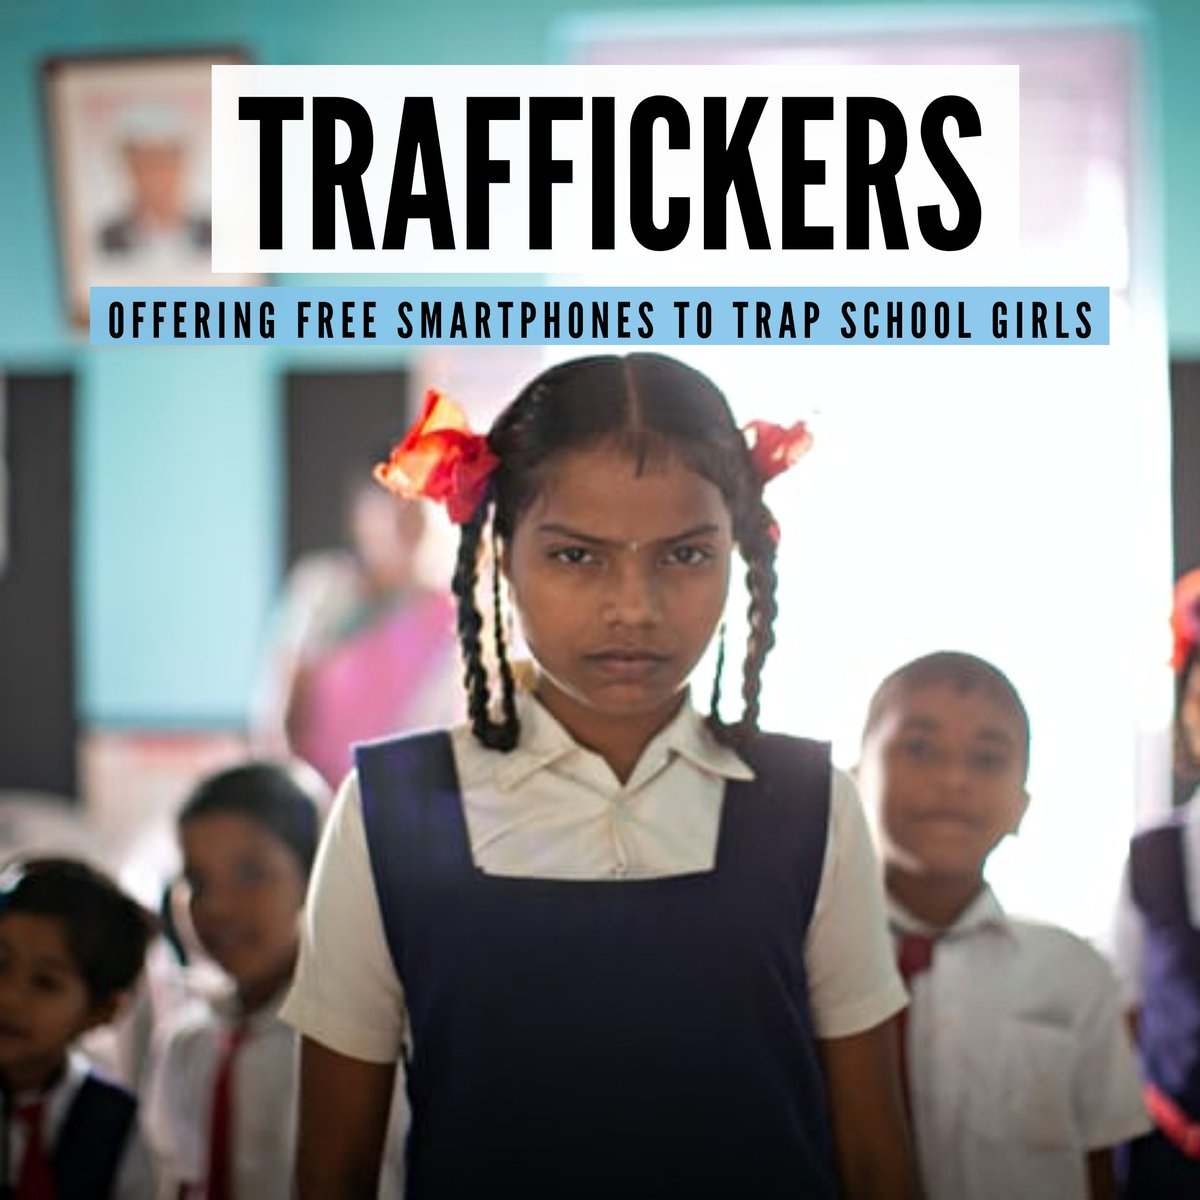 #Traffickers found an opportunity to exploit #minor girls during the #pandemic by offering them free #smartphones. Desperate to join online classes, they accepted the offers and eventually fell into the traps laid by them, resulting in a number of school girls being #trafficked